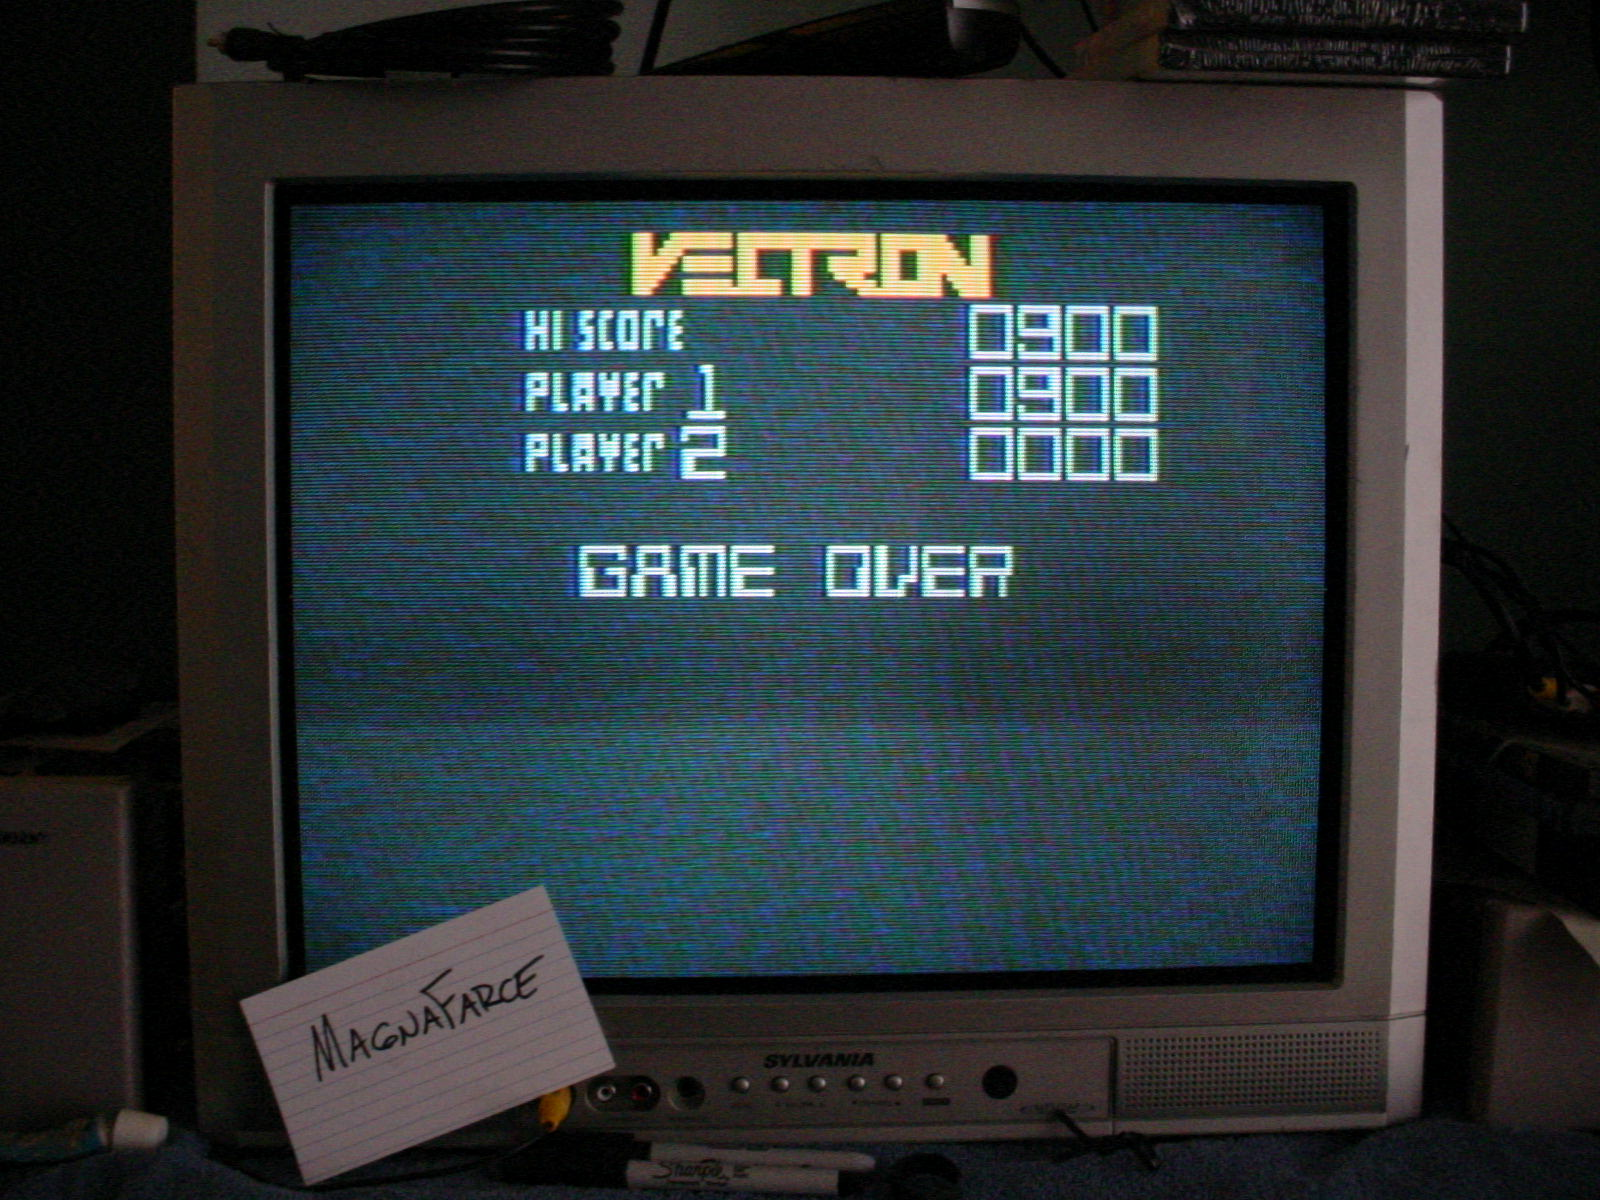 Vectron 900 points